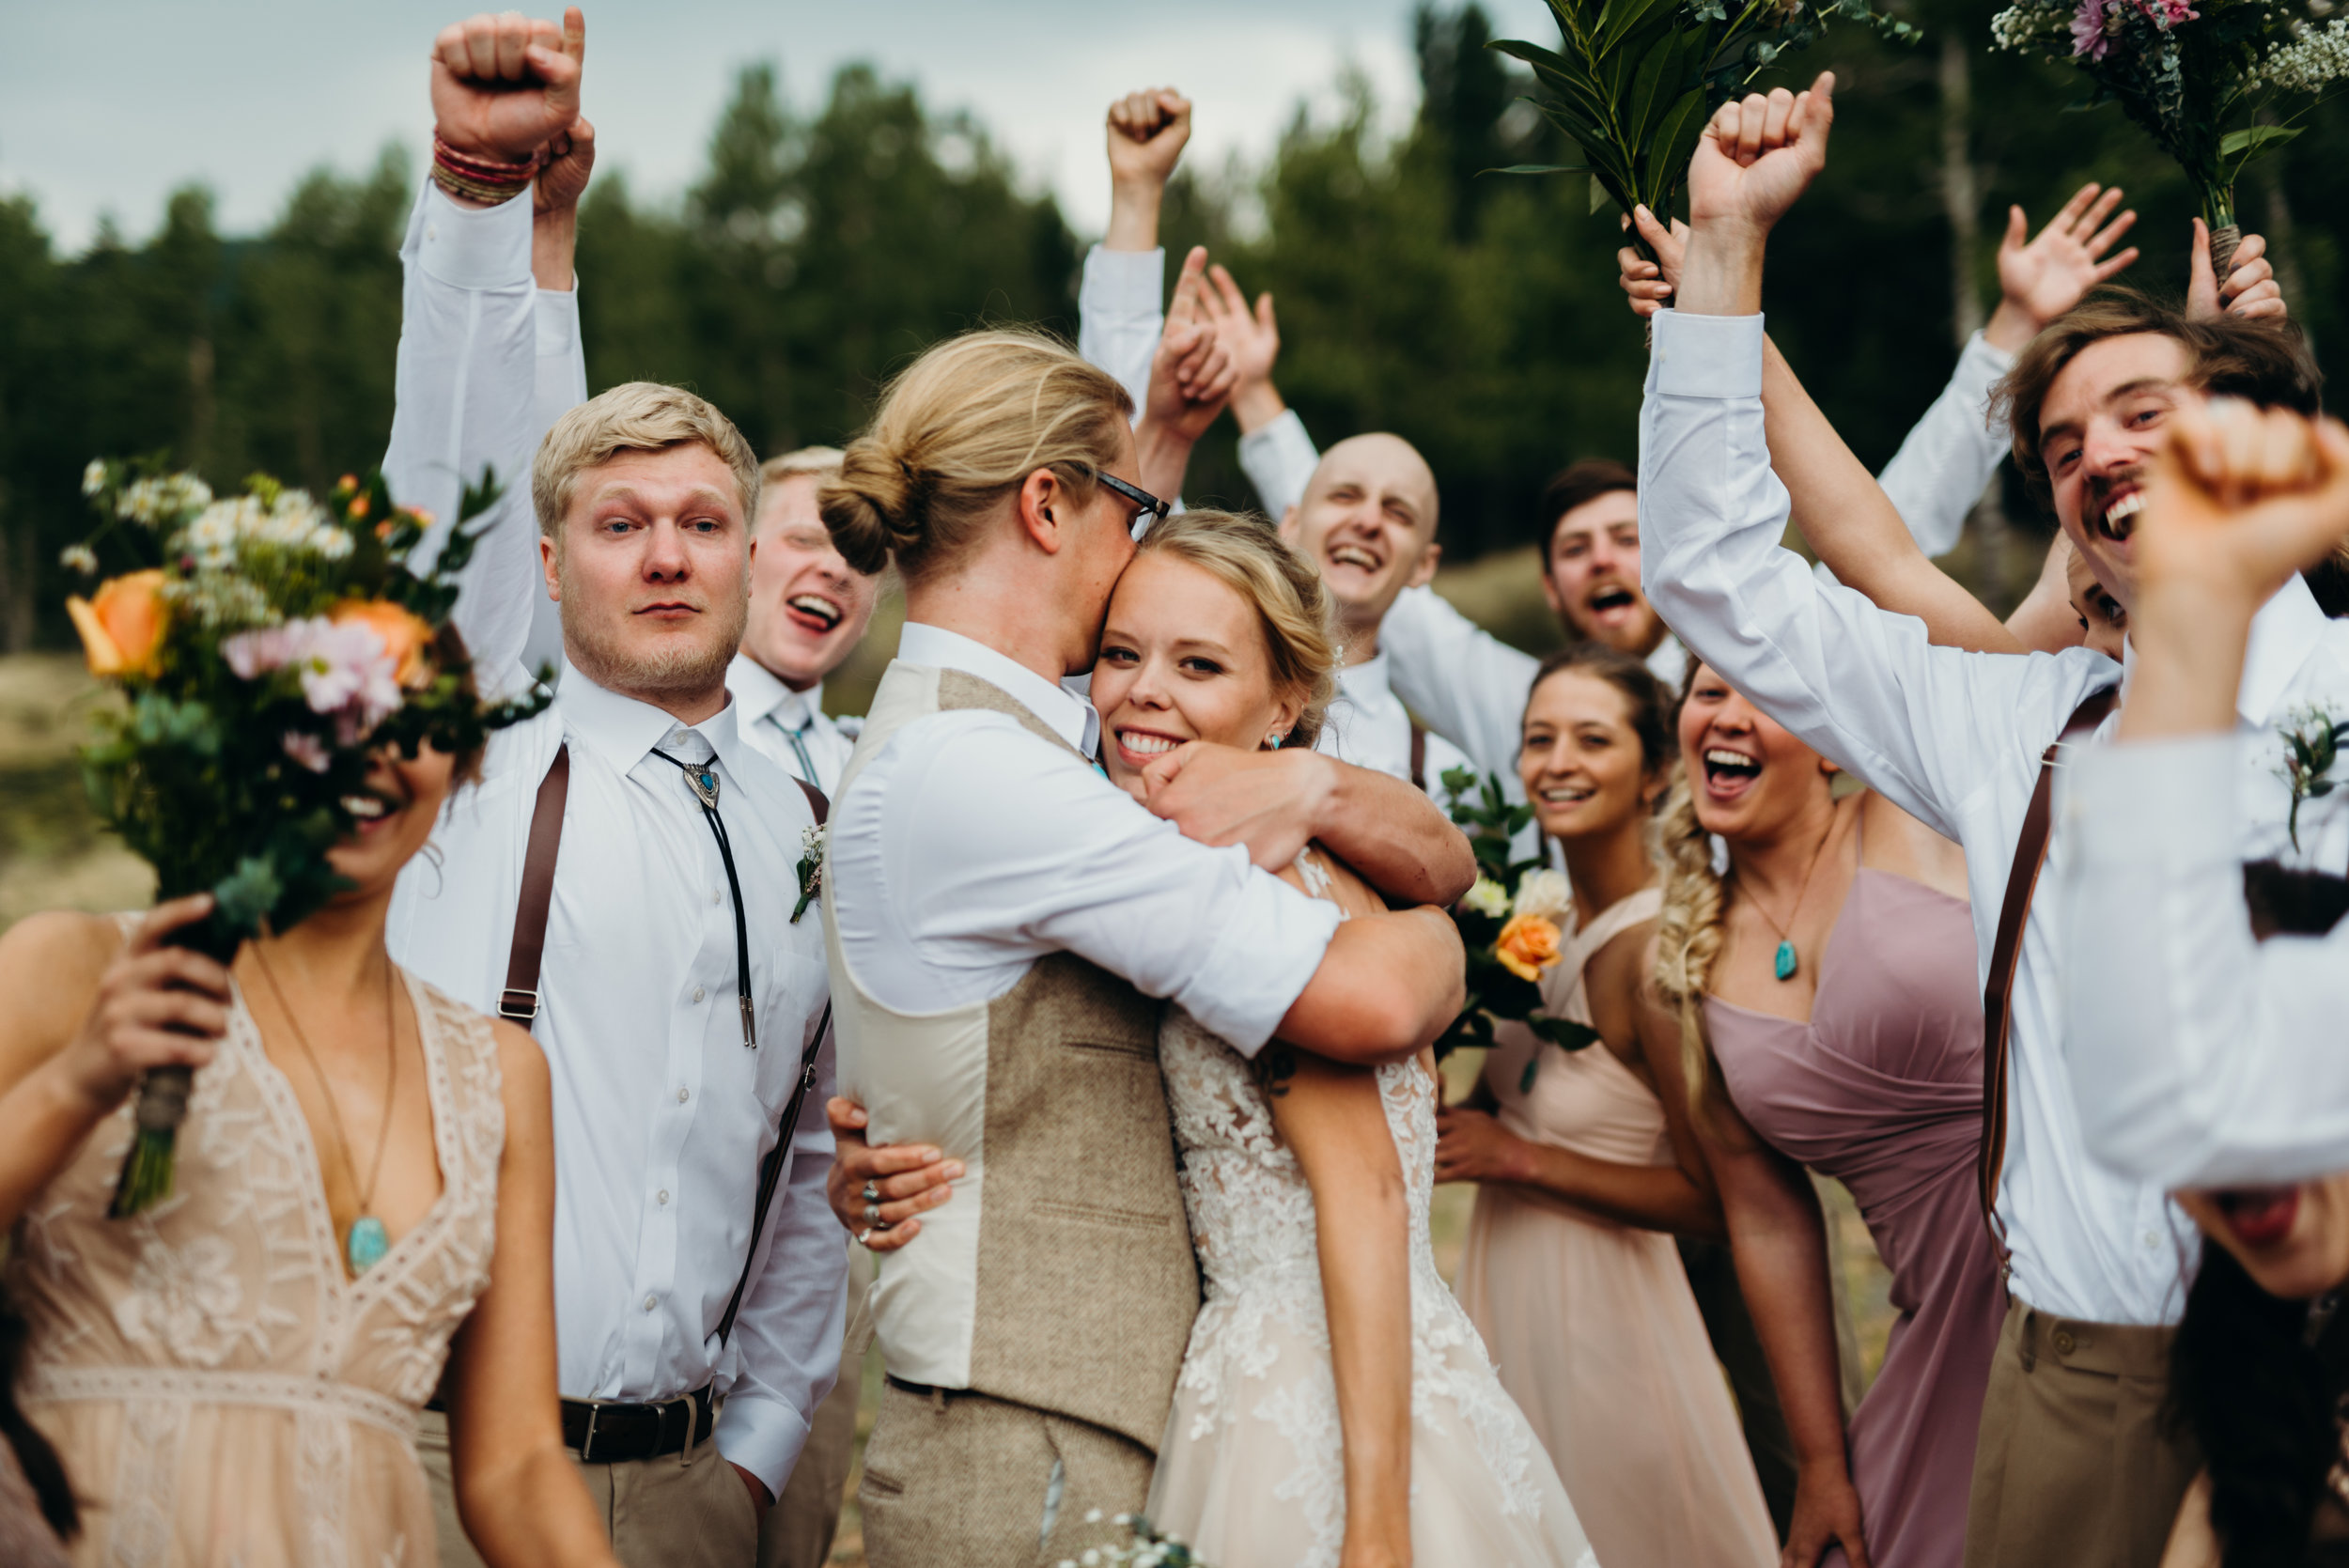 Celebrate! Ally & Jared's Rustic Colorado mountain / diy / summer camp wedding